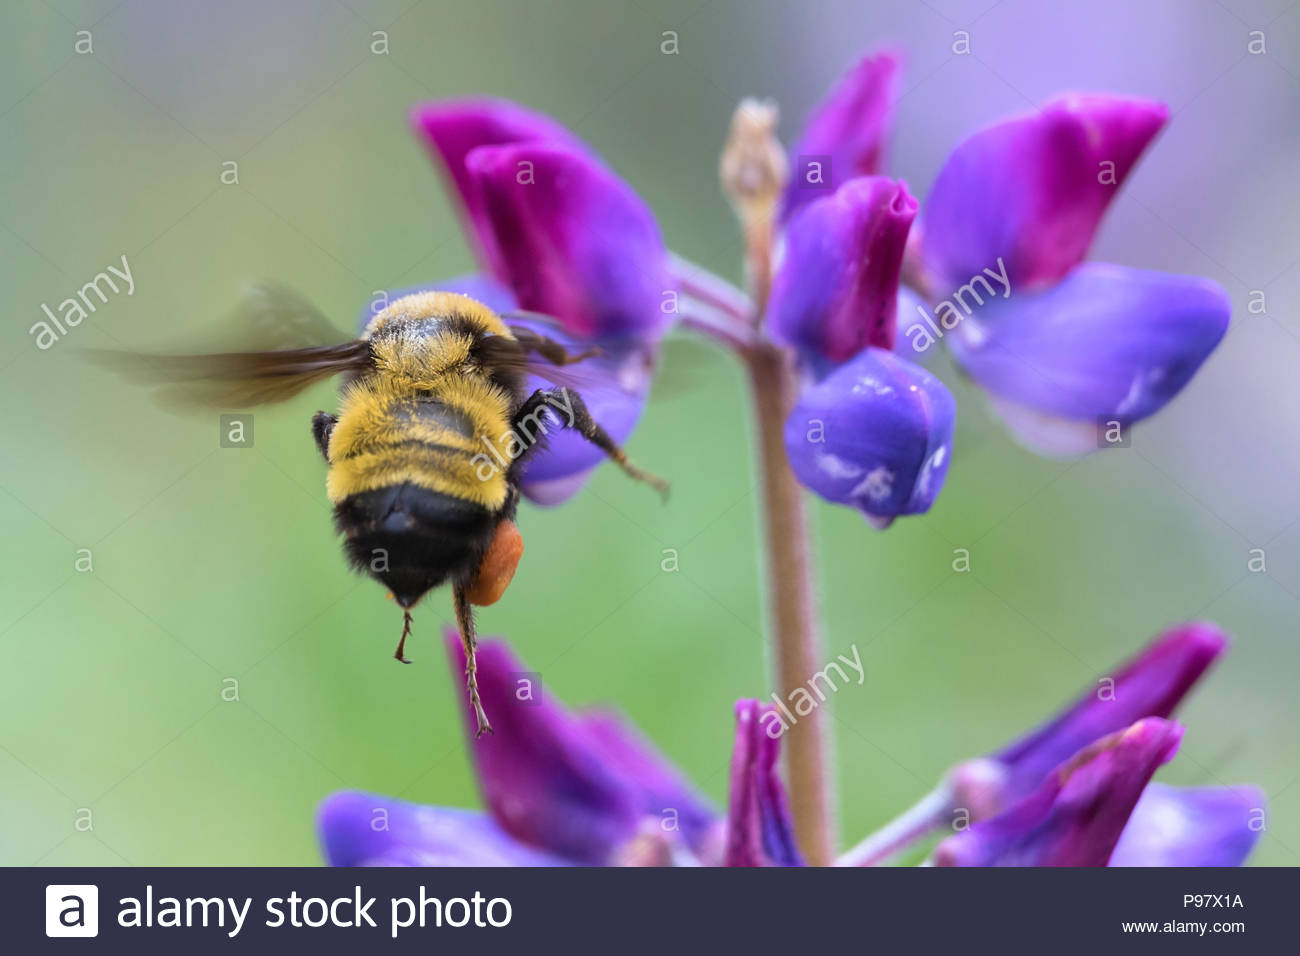 Sonoran bumble bee flying to lupine flower - Stock Image